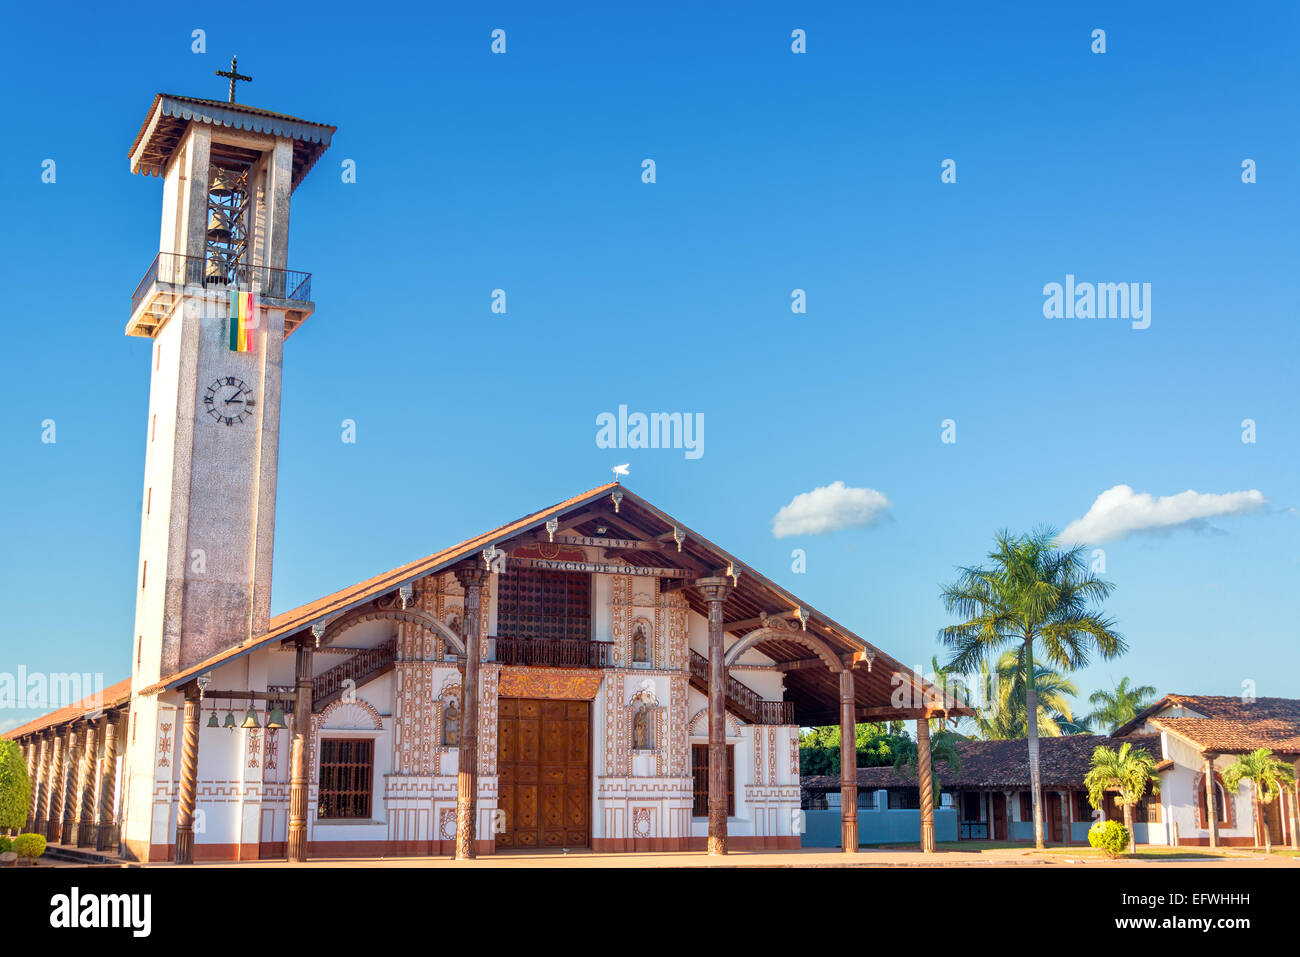 UNESCO World Heritage Jesuit Mission church in San Ignacio, Bolivia - Stock Image